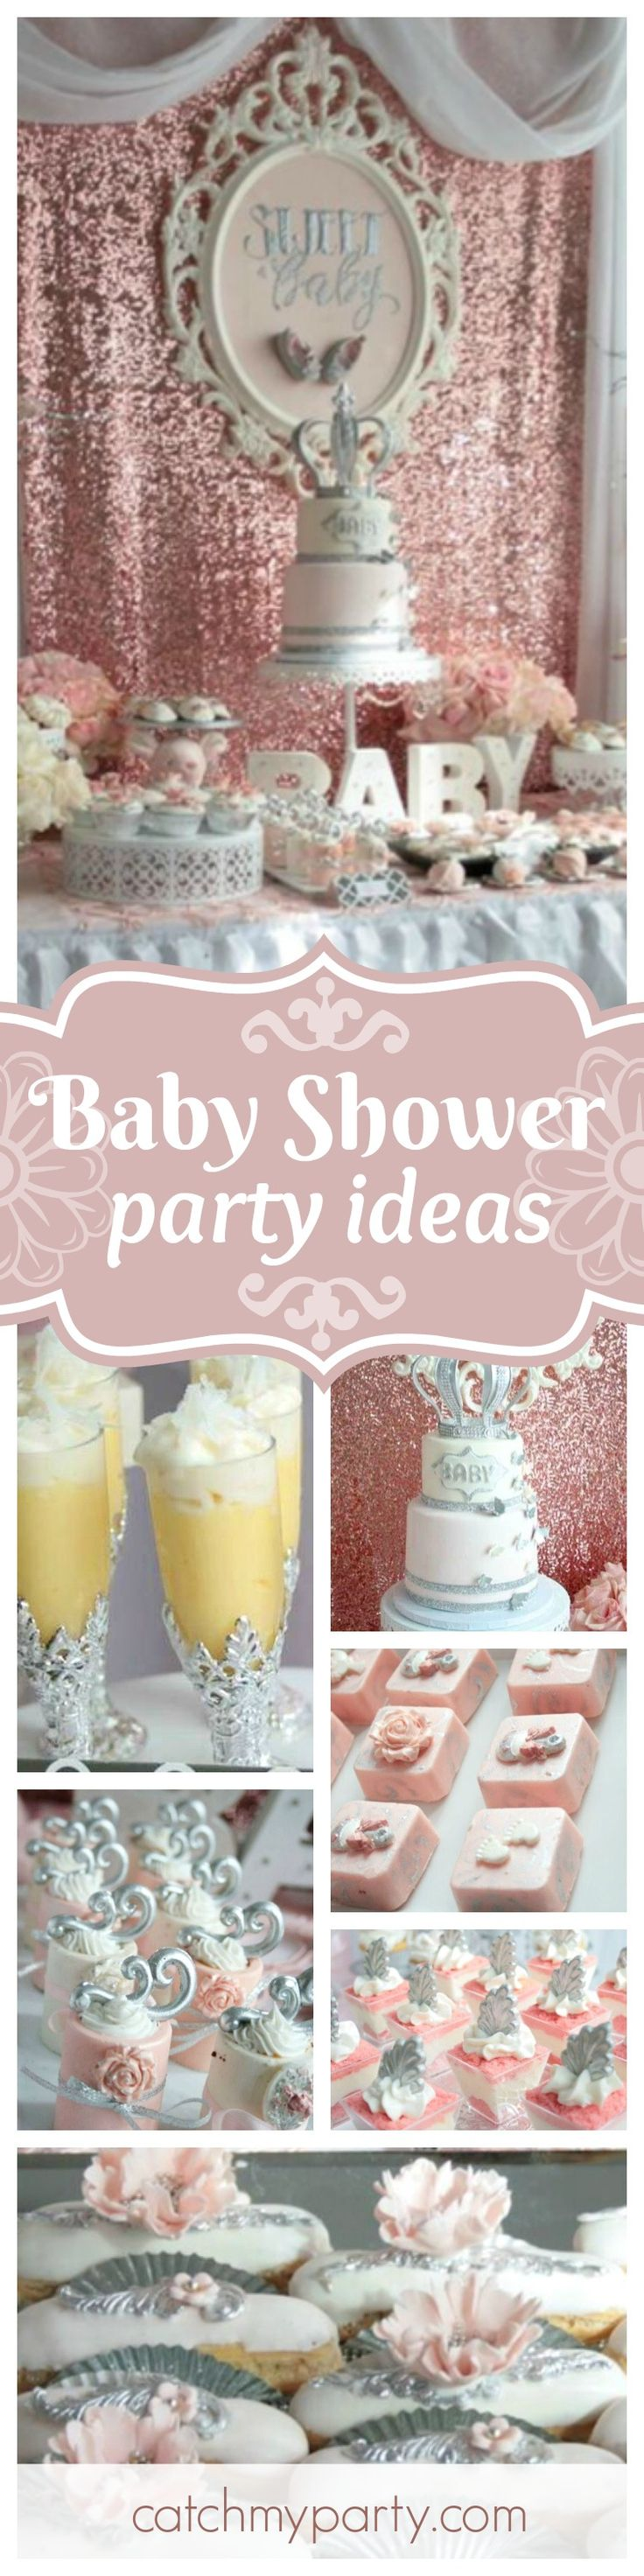 Don't miss this glamorous Blush Pink Baby Shower. The dessert table & backdrop are amazing!! See more party ideas and share yours at CatchMyParty.com